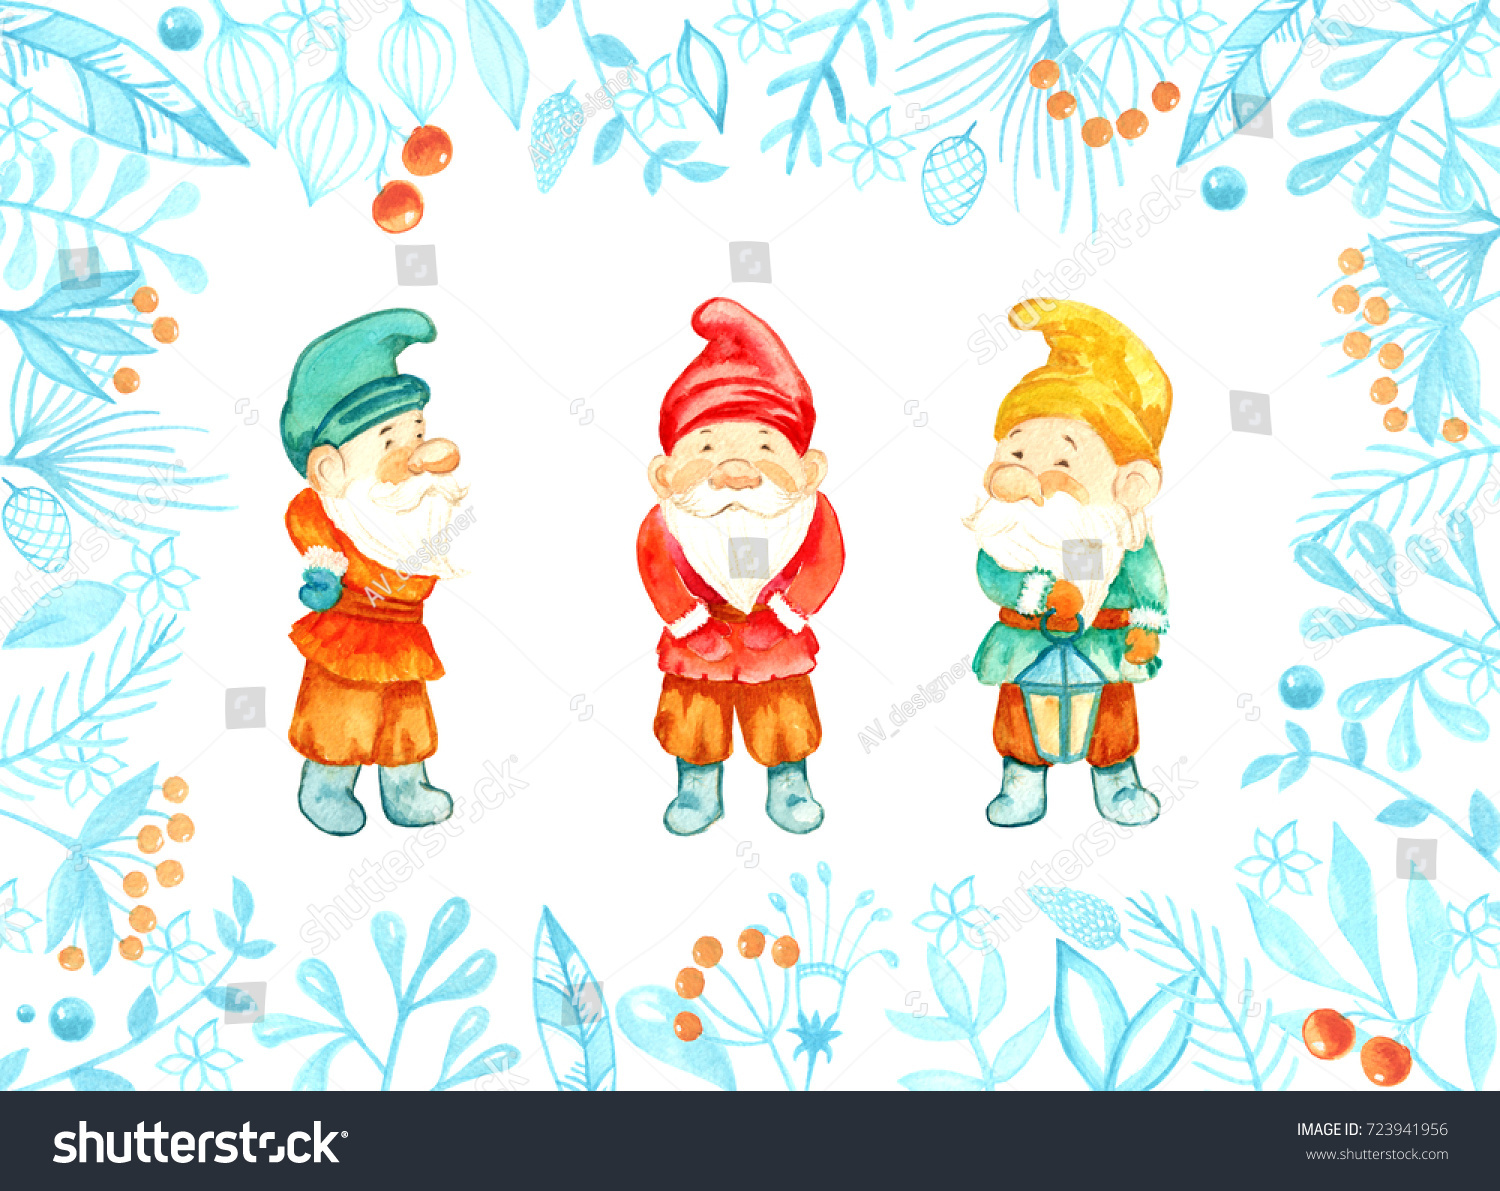 Watercolor Christmas Gnomes Cute Children Illustration Stock ...